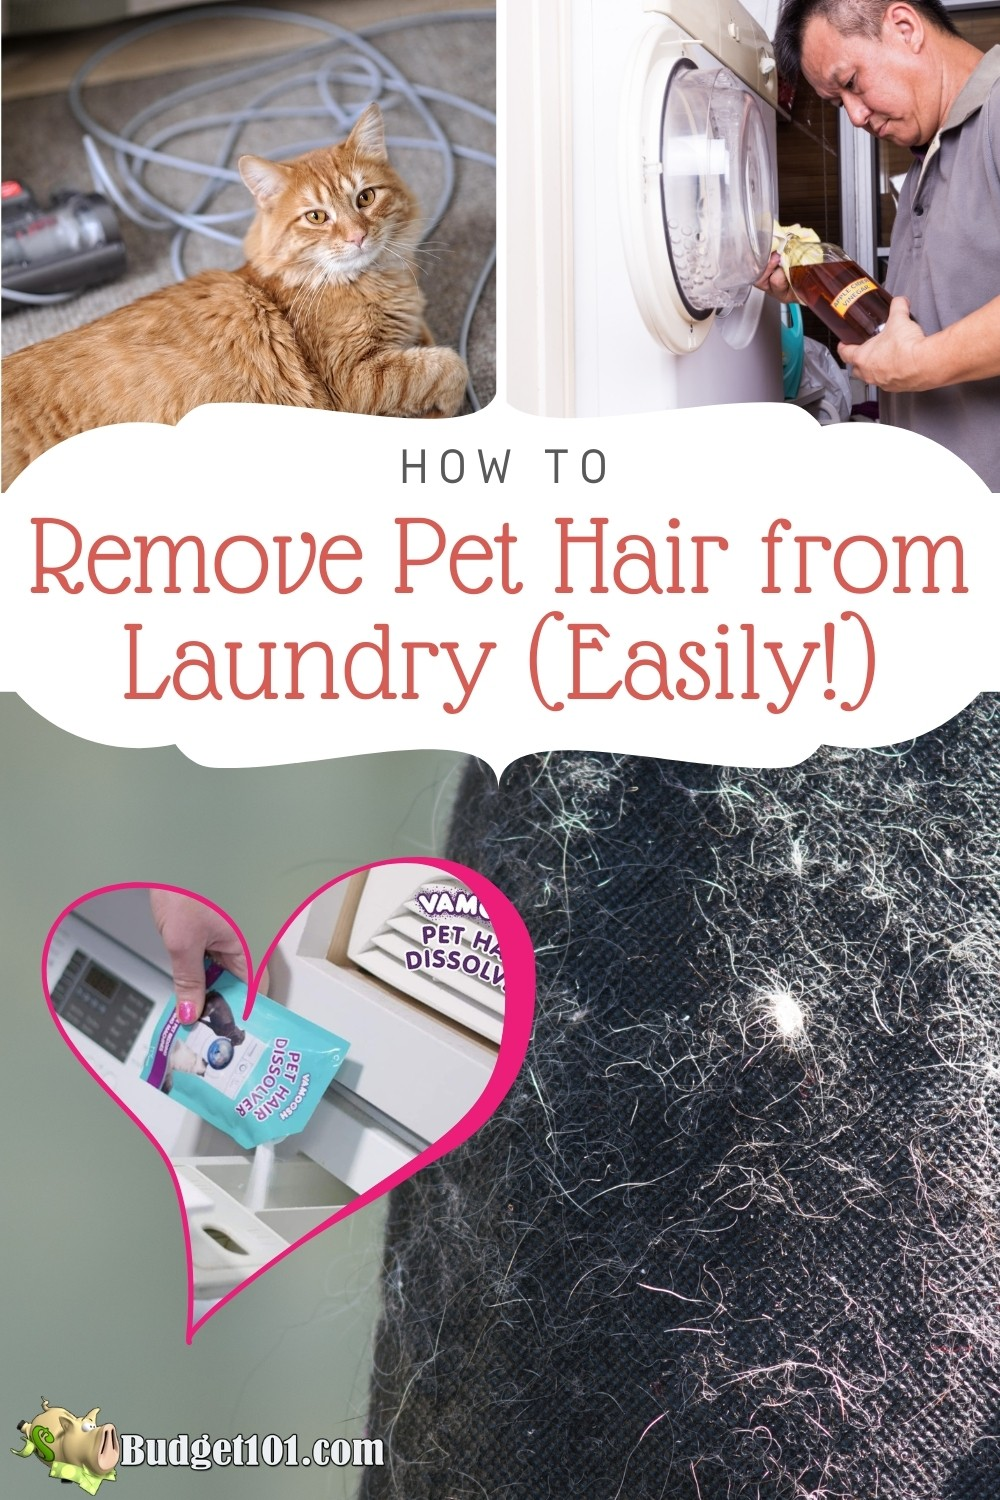 How to Remove Pet Hair From Laundry - complete guide to remove pet hair from laundry, carpeting, and furniture; What works and what doesn't! #Pets #TipsnTricks #Budget10 #DIY #laundry #laundryhacks #DIY